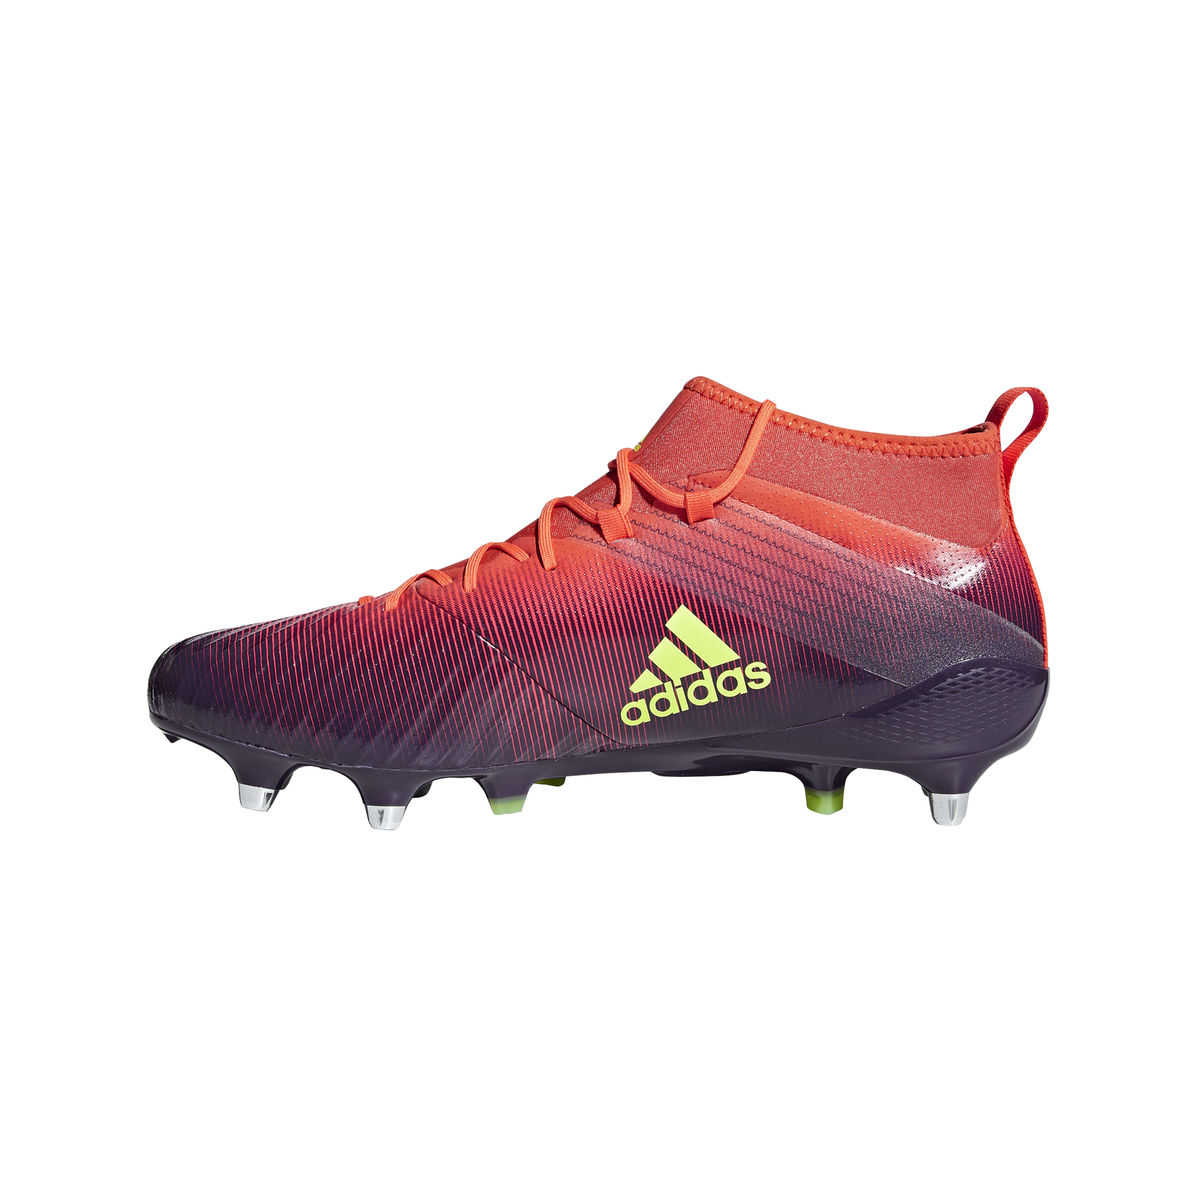 0cfd30136 ... adidas Predator Flare Rugby Boots Legend Purple - front 2 ...